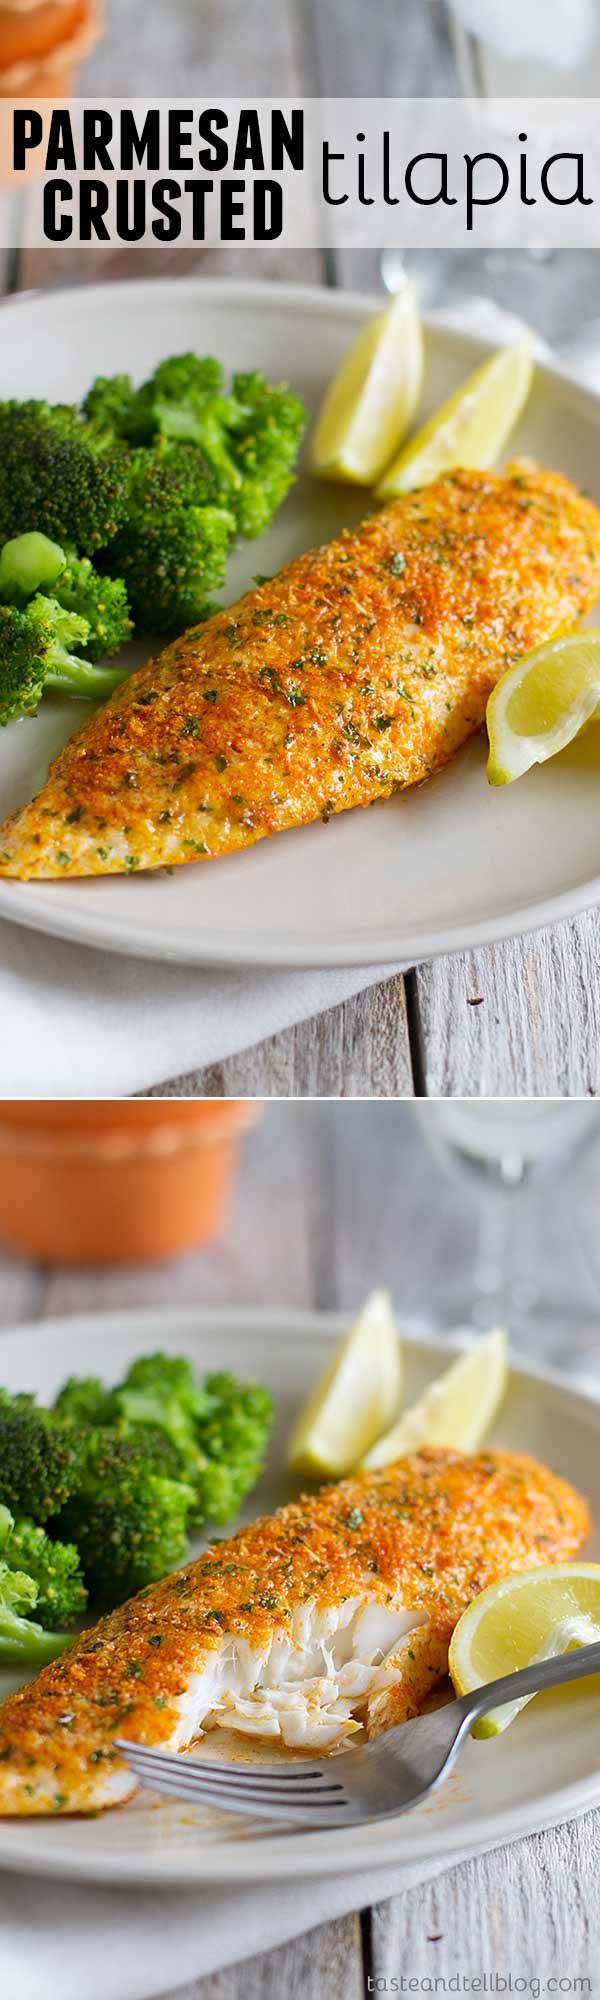 This Parmesan Crusted Tilapia Is A Simple Fish Recipe That Done In 20 Minutes And